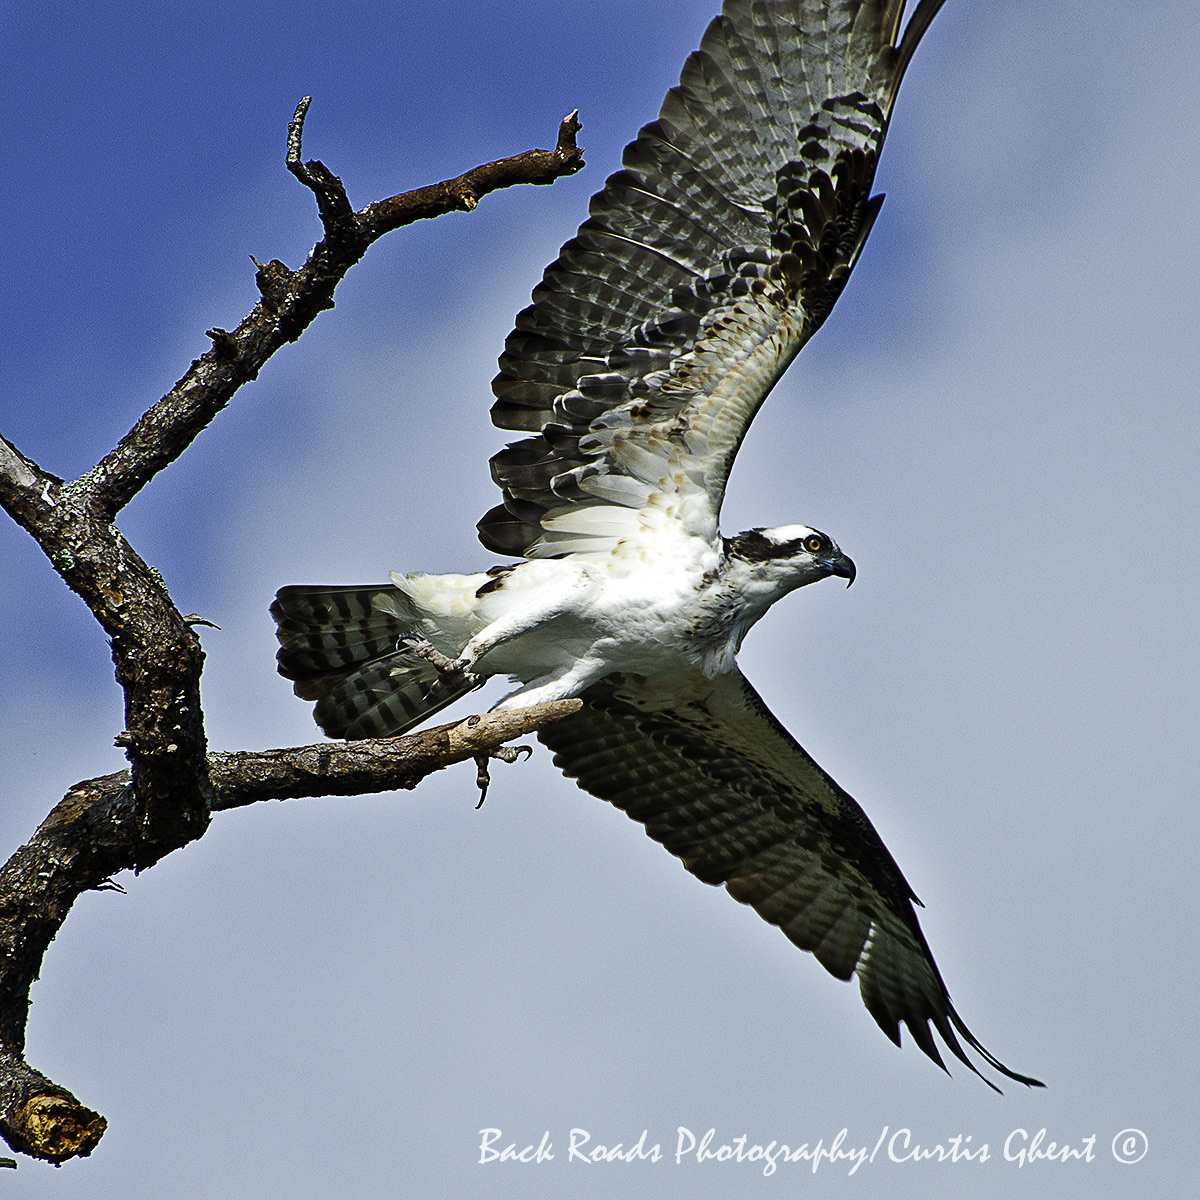 Sometimes you get lucky. While boating in Florida I captured this Osprey just as it launched into flight.